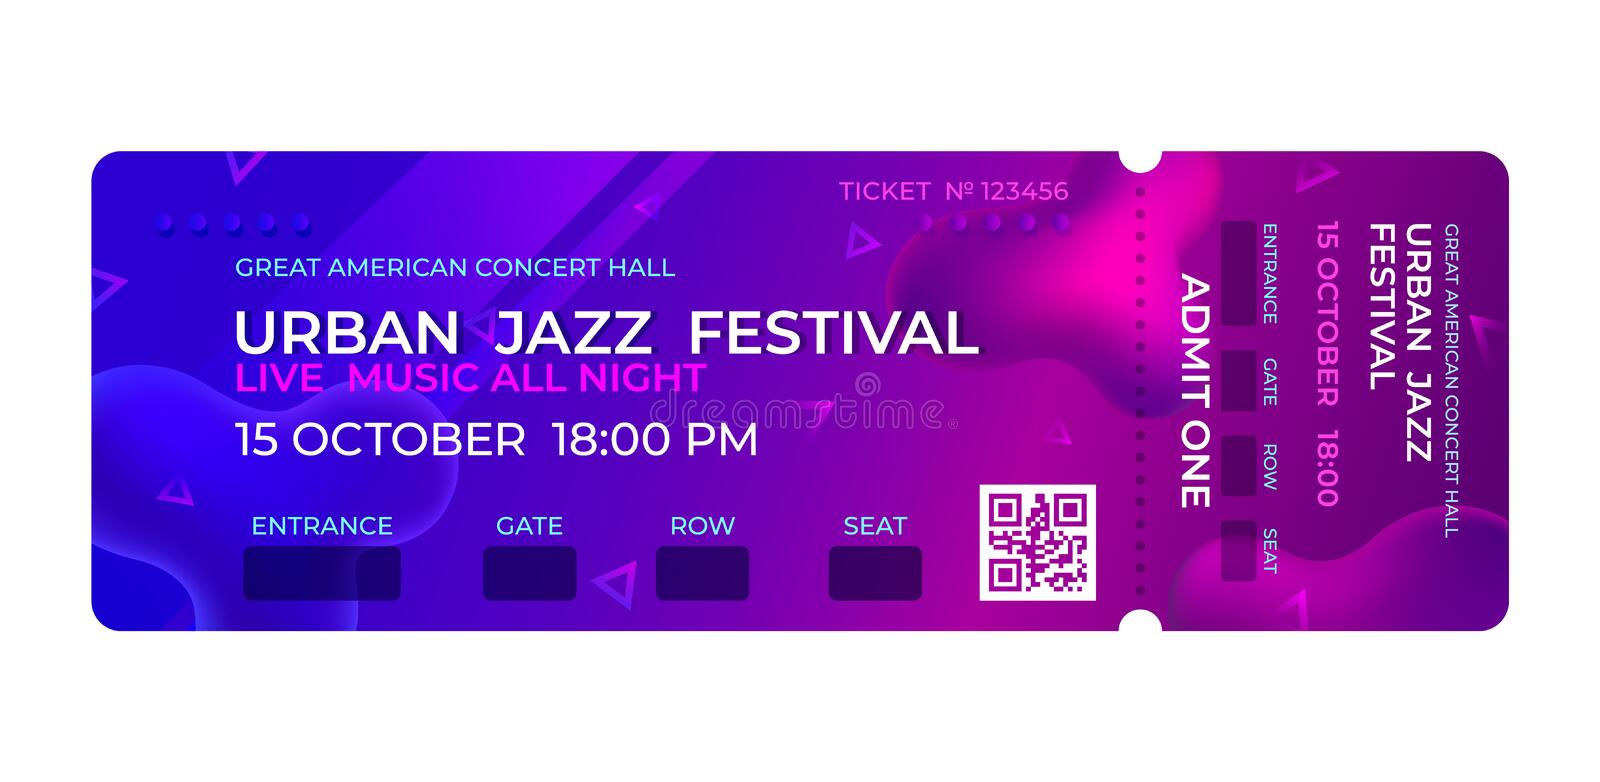 Movie ticket. Music concert, party event entrance ticket design. Invitation vector template royalty free illustration